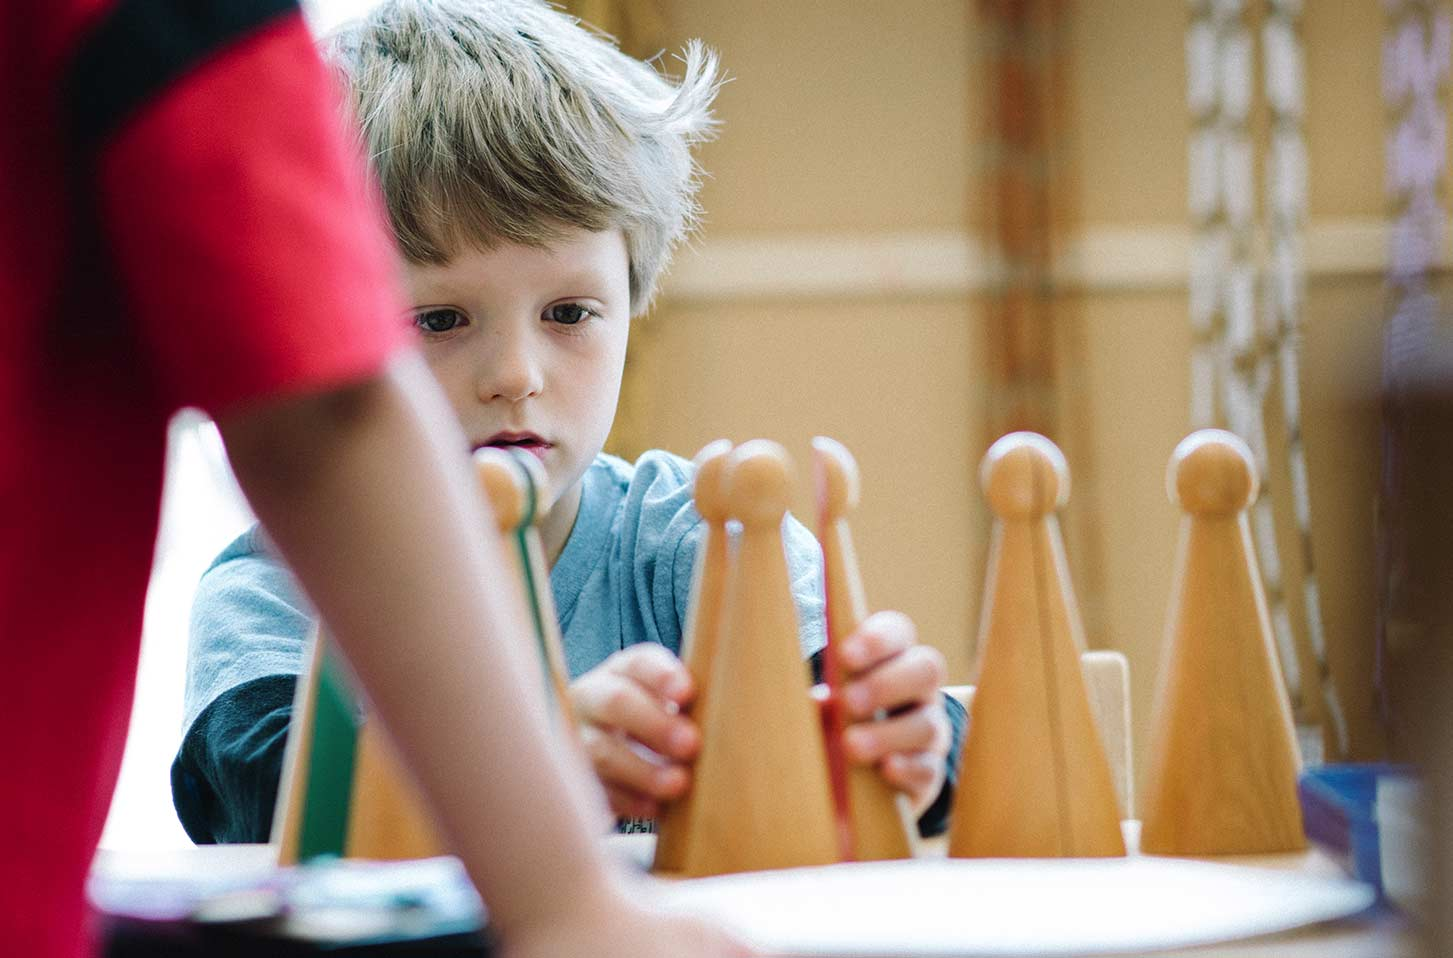 A child plays with toy cones in a classroom